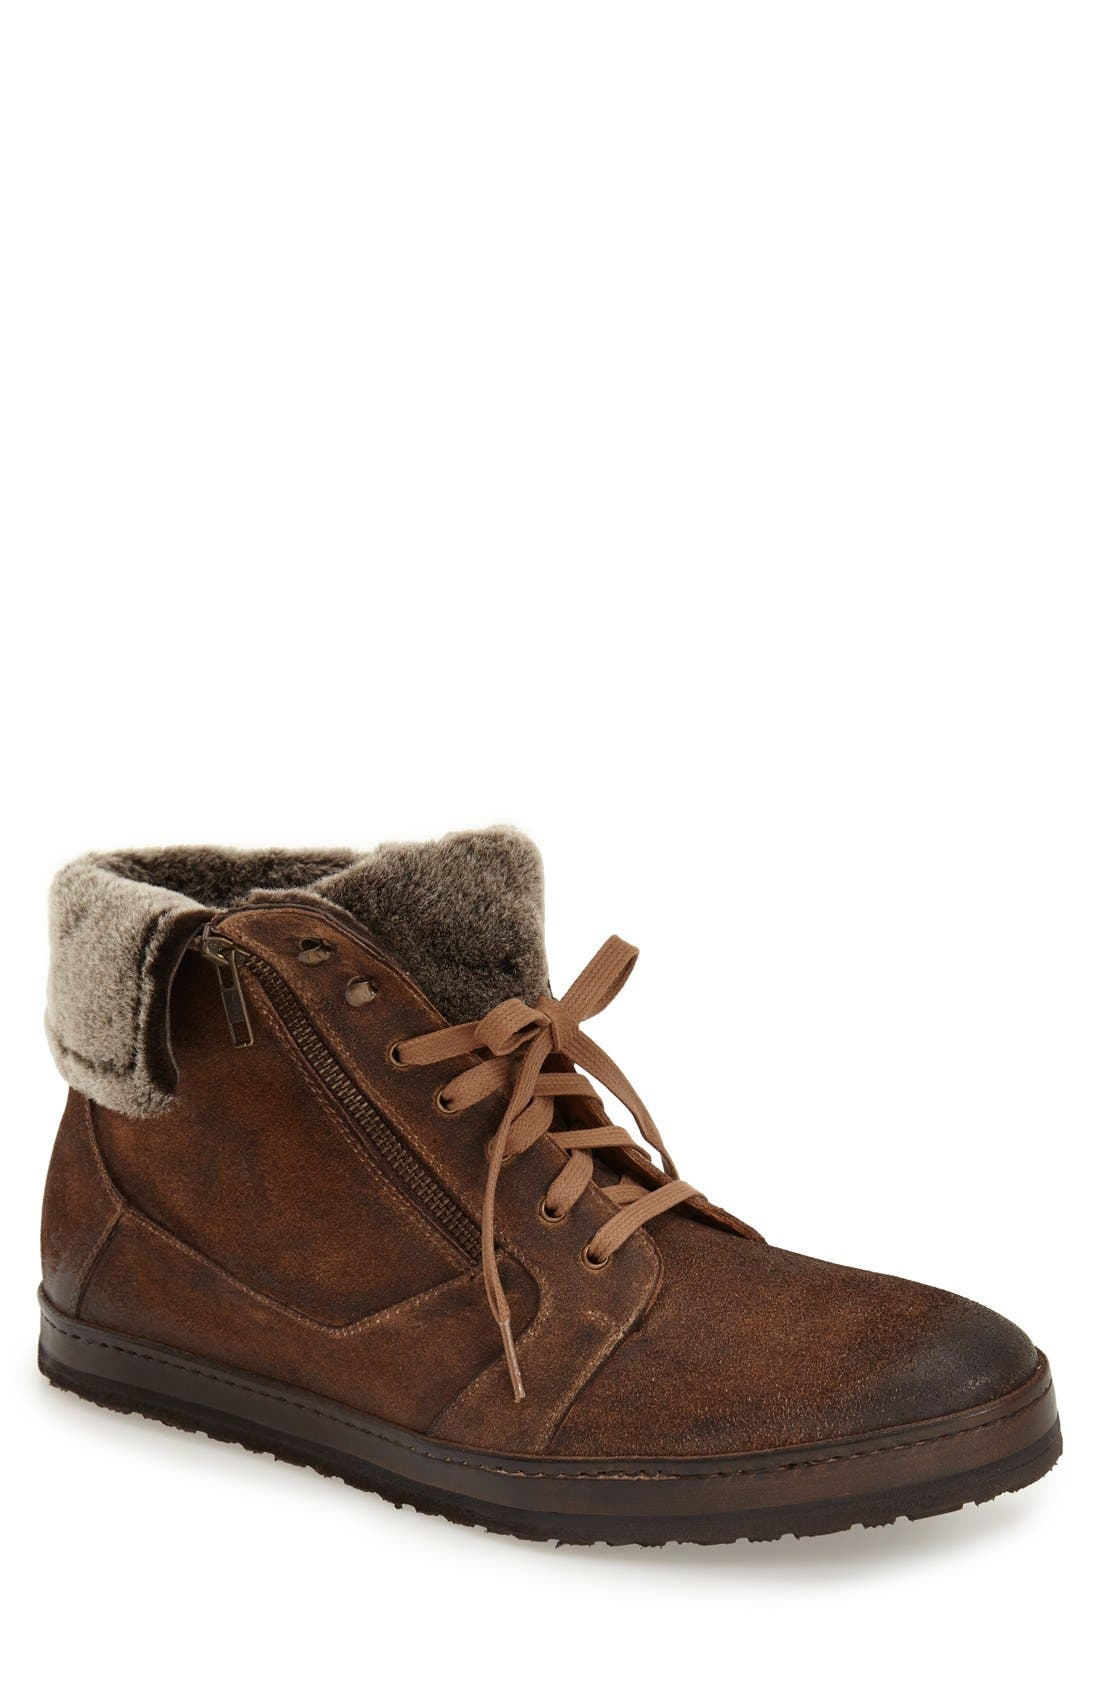 'Utrech' Sneaker Boot,                             Main thumbnail 1, color,                             Taupe